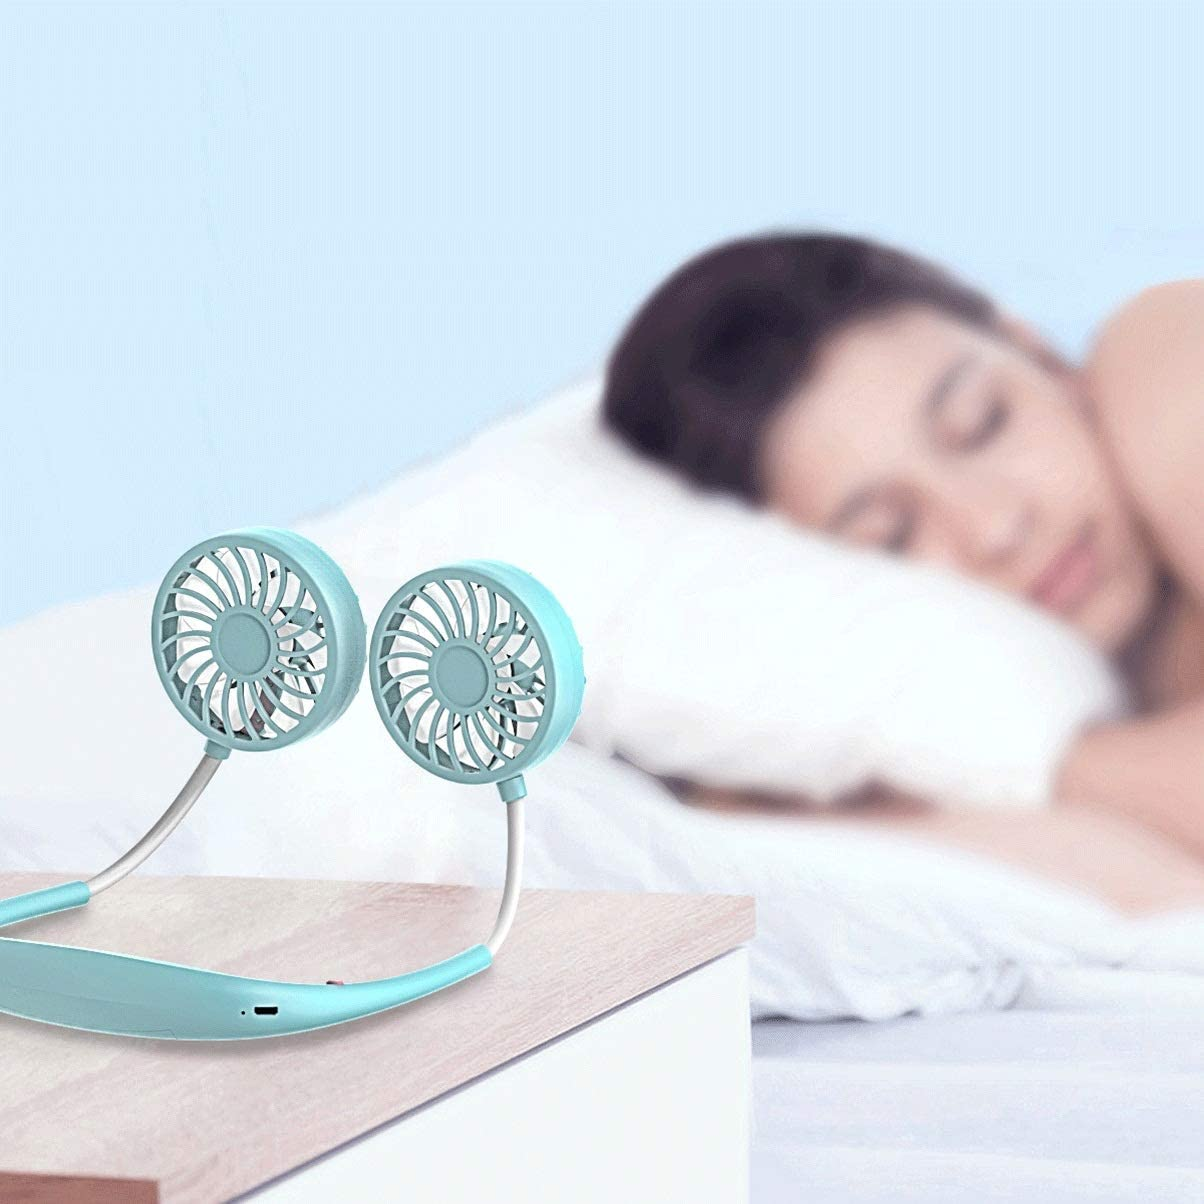 Color : Black FSJOOK Outdoor Lazy Sports Small Fan Silent Student Home Office Convenient Mini USB Charging Fan